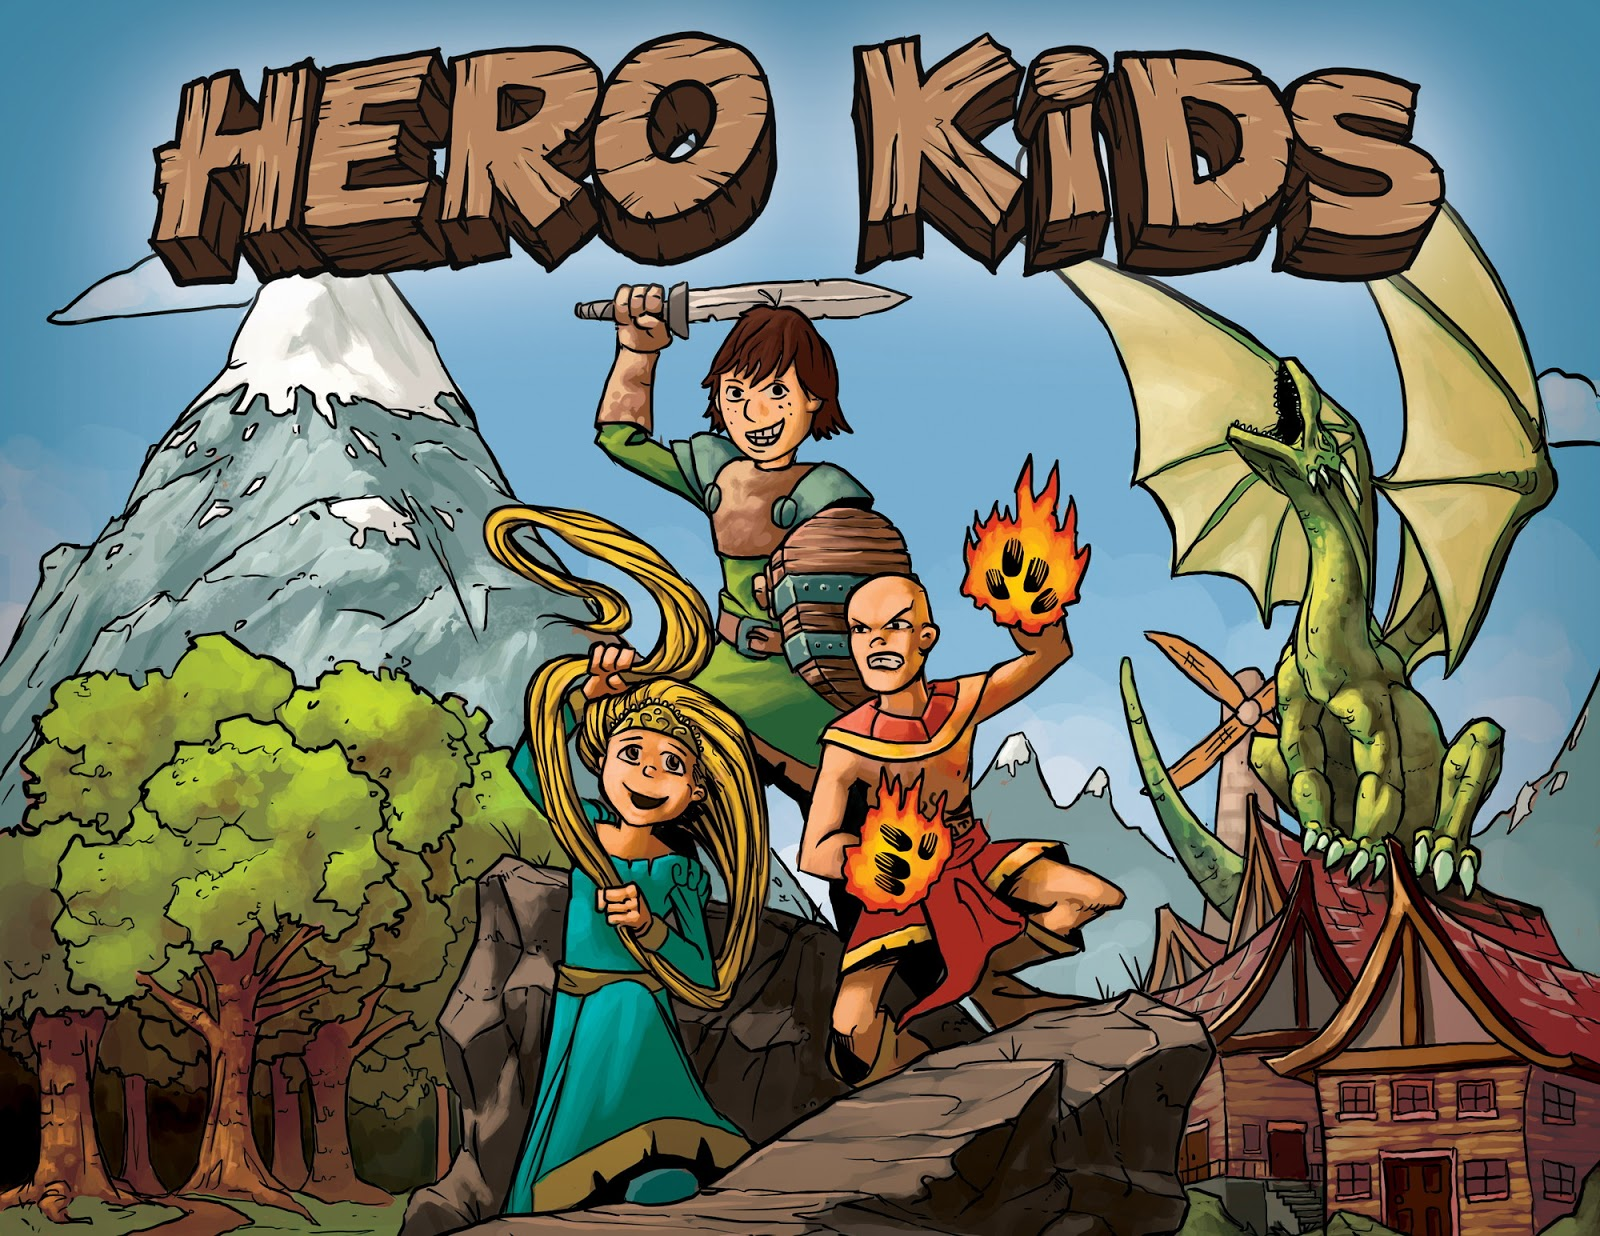 Hero Kids cover